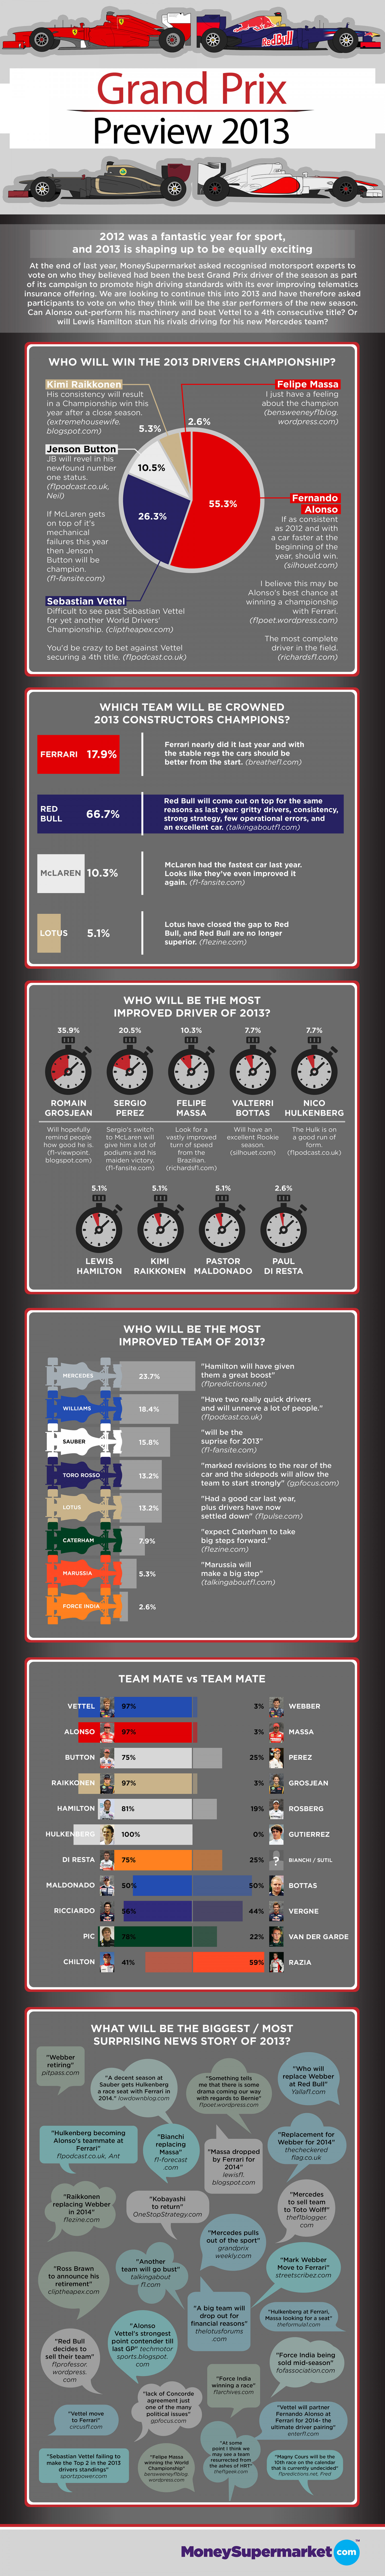 Grand Prix Preview 2013 Infographic